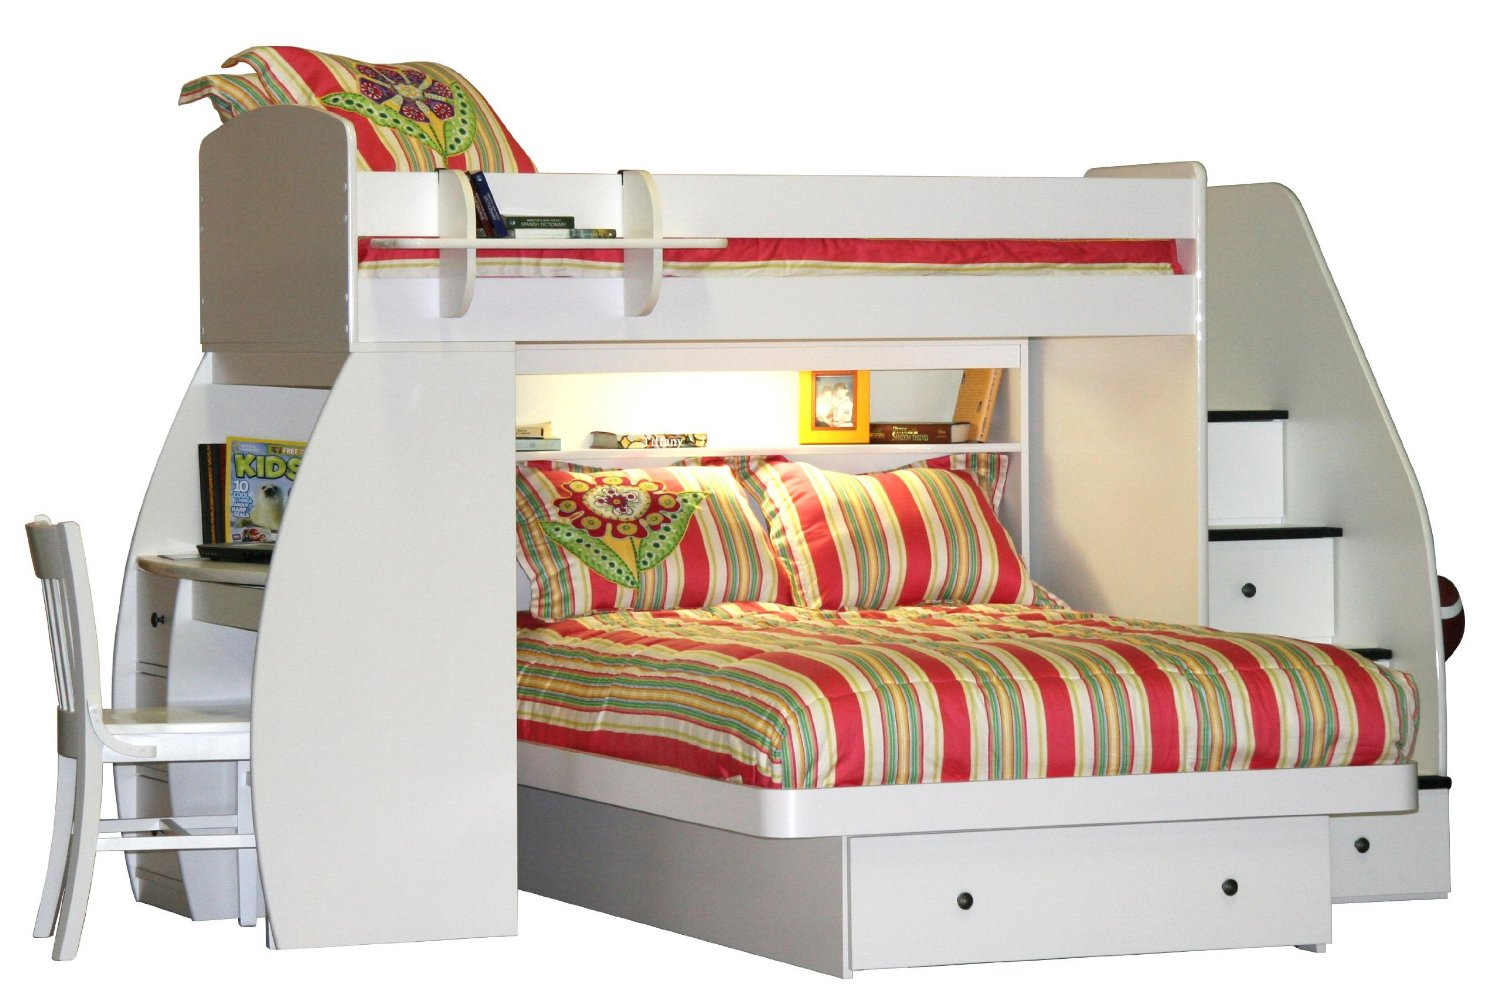 awesome wood Bunk Beds With Stairs in white with stripped bedding set for teen bedroom decor ideas